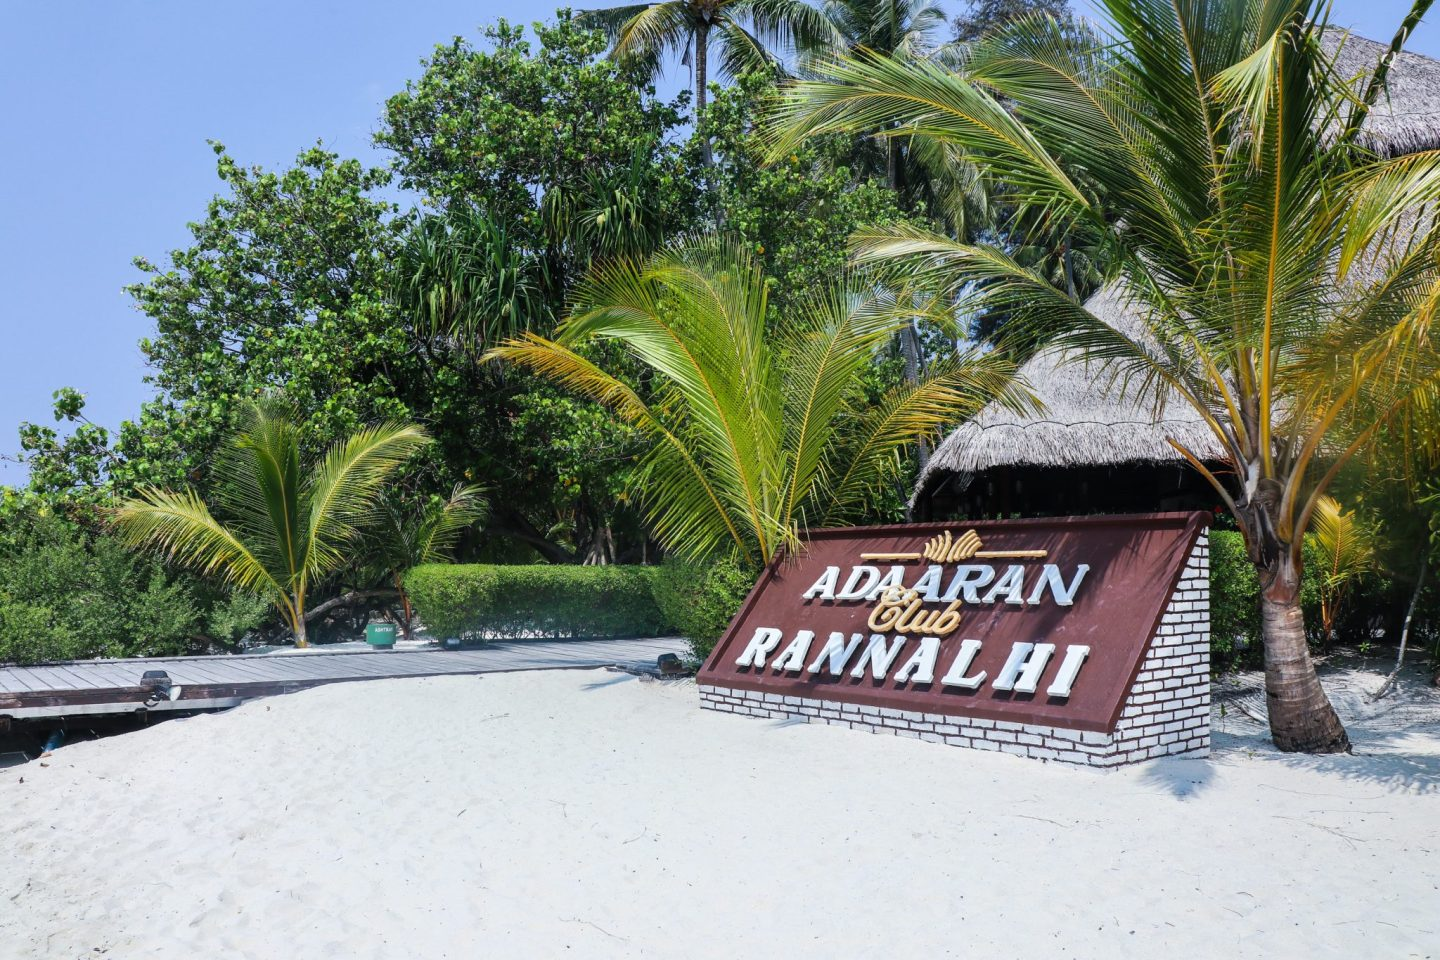 Hotel Review: Adaaran Club Rannalhi, Maldives